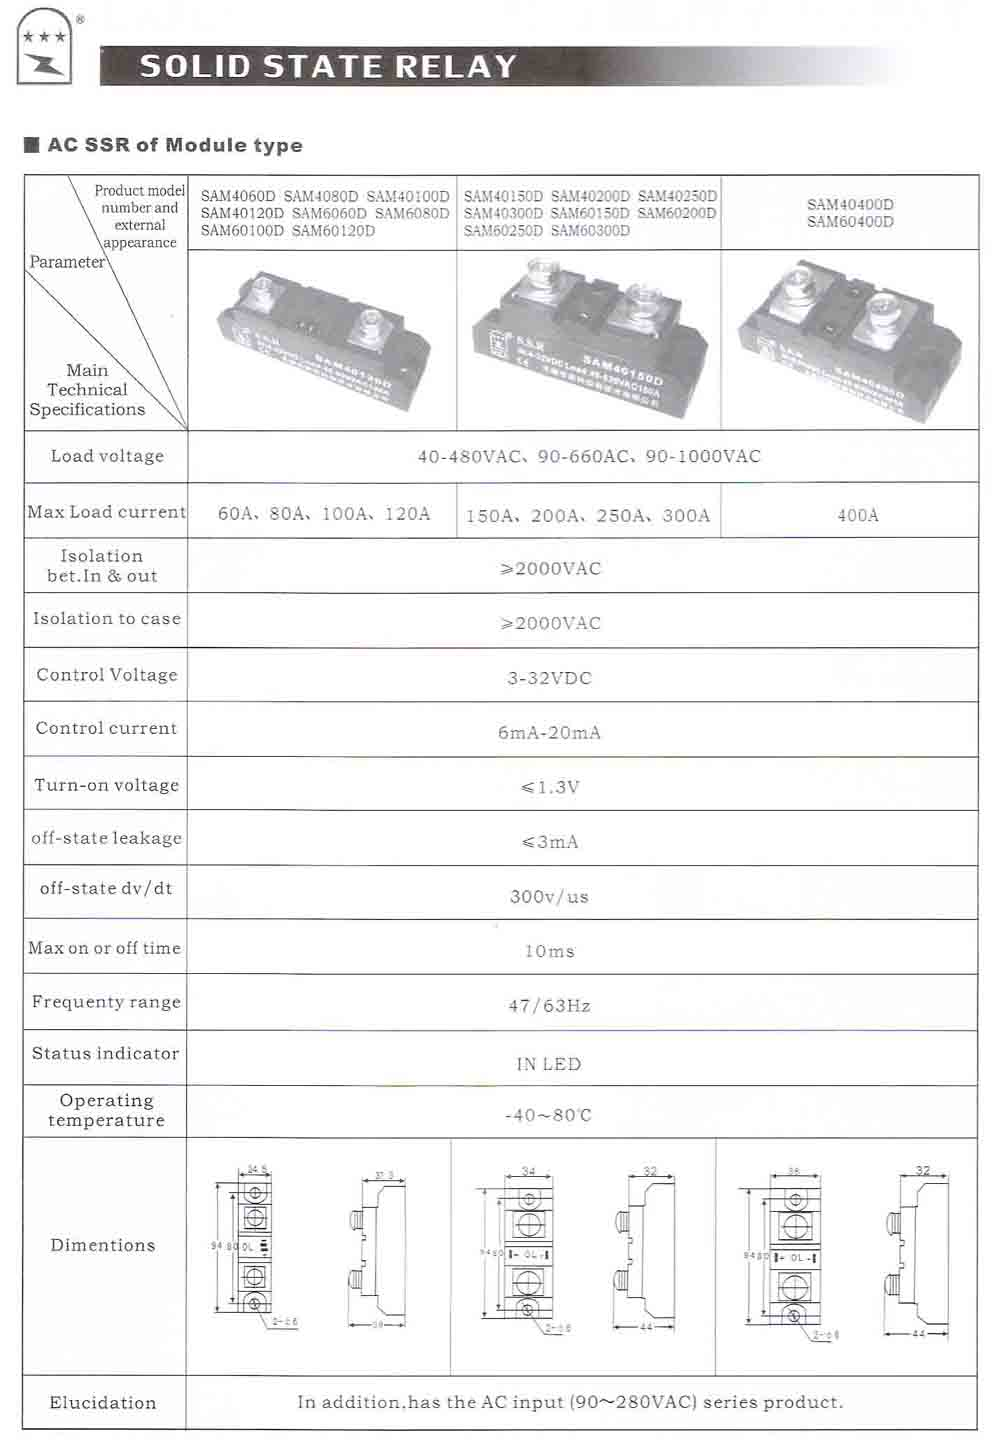 Solid State Relay Sam4060d Sam40400d Wuxi Gold Control Voltage Click Here For Details